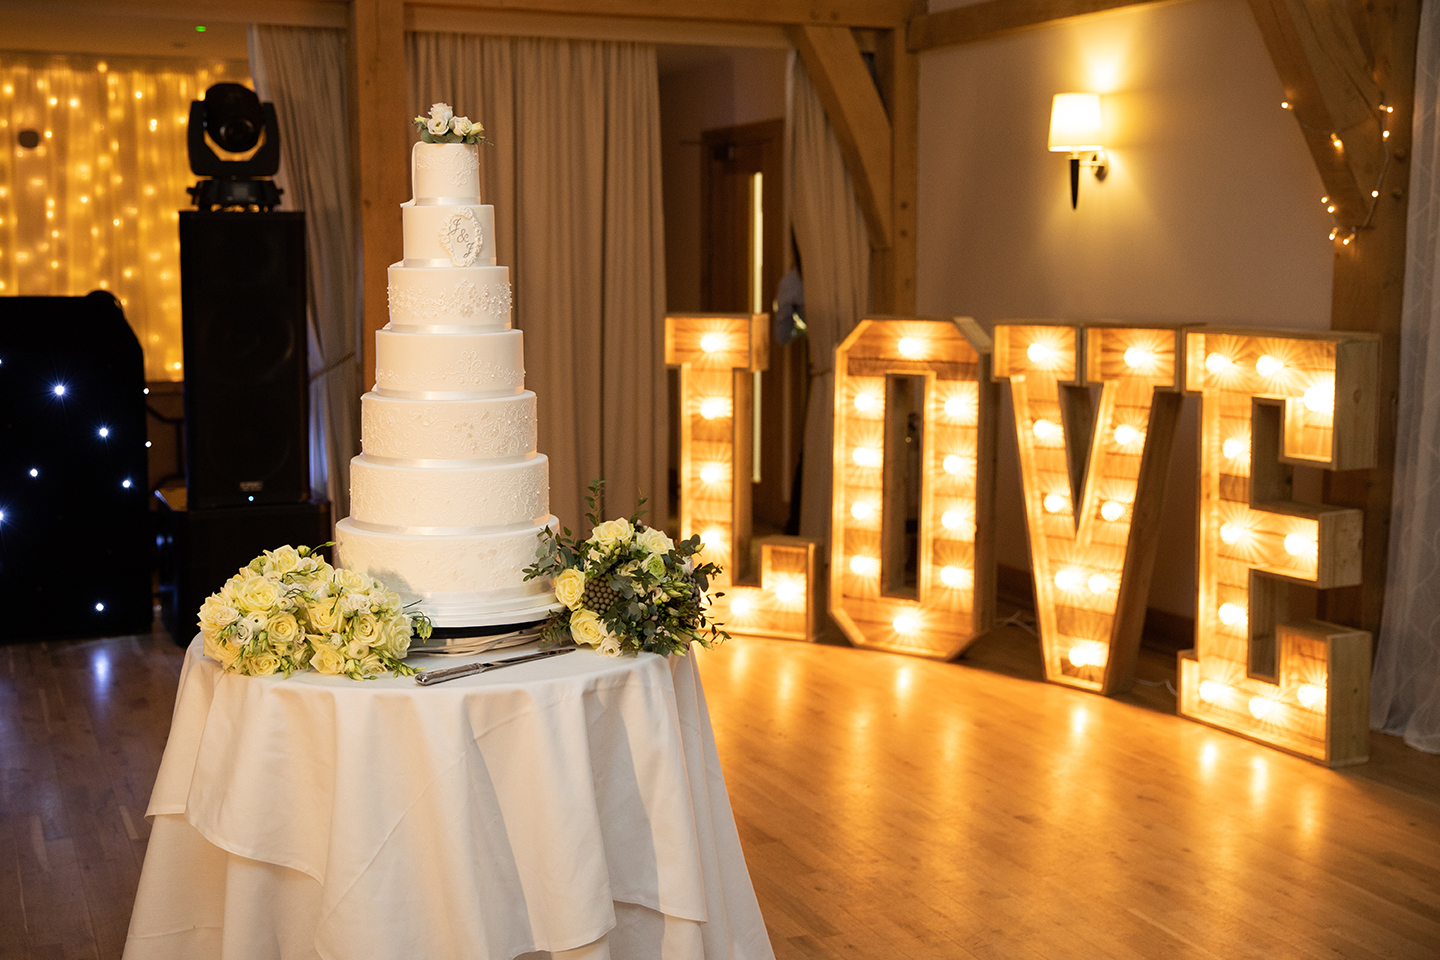 A wedding cake sits in front of large light up love letters in the Bridge Barn at Bassmead Manor Barns